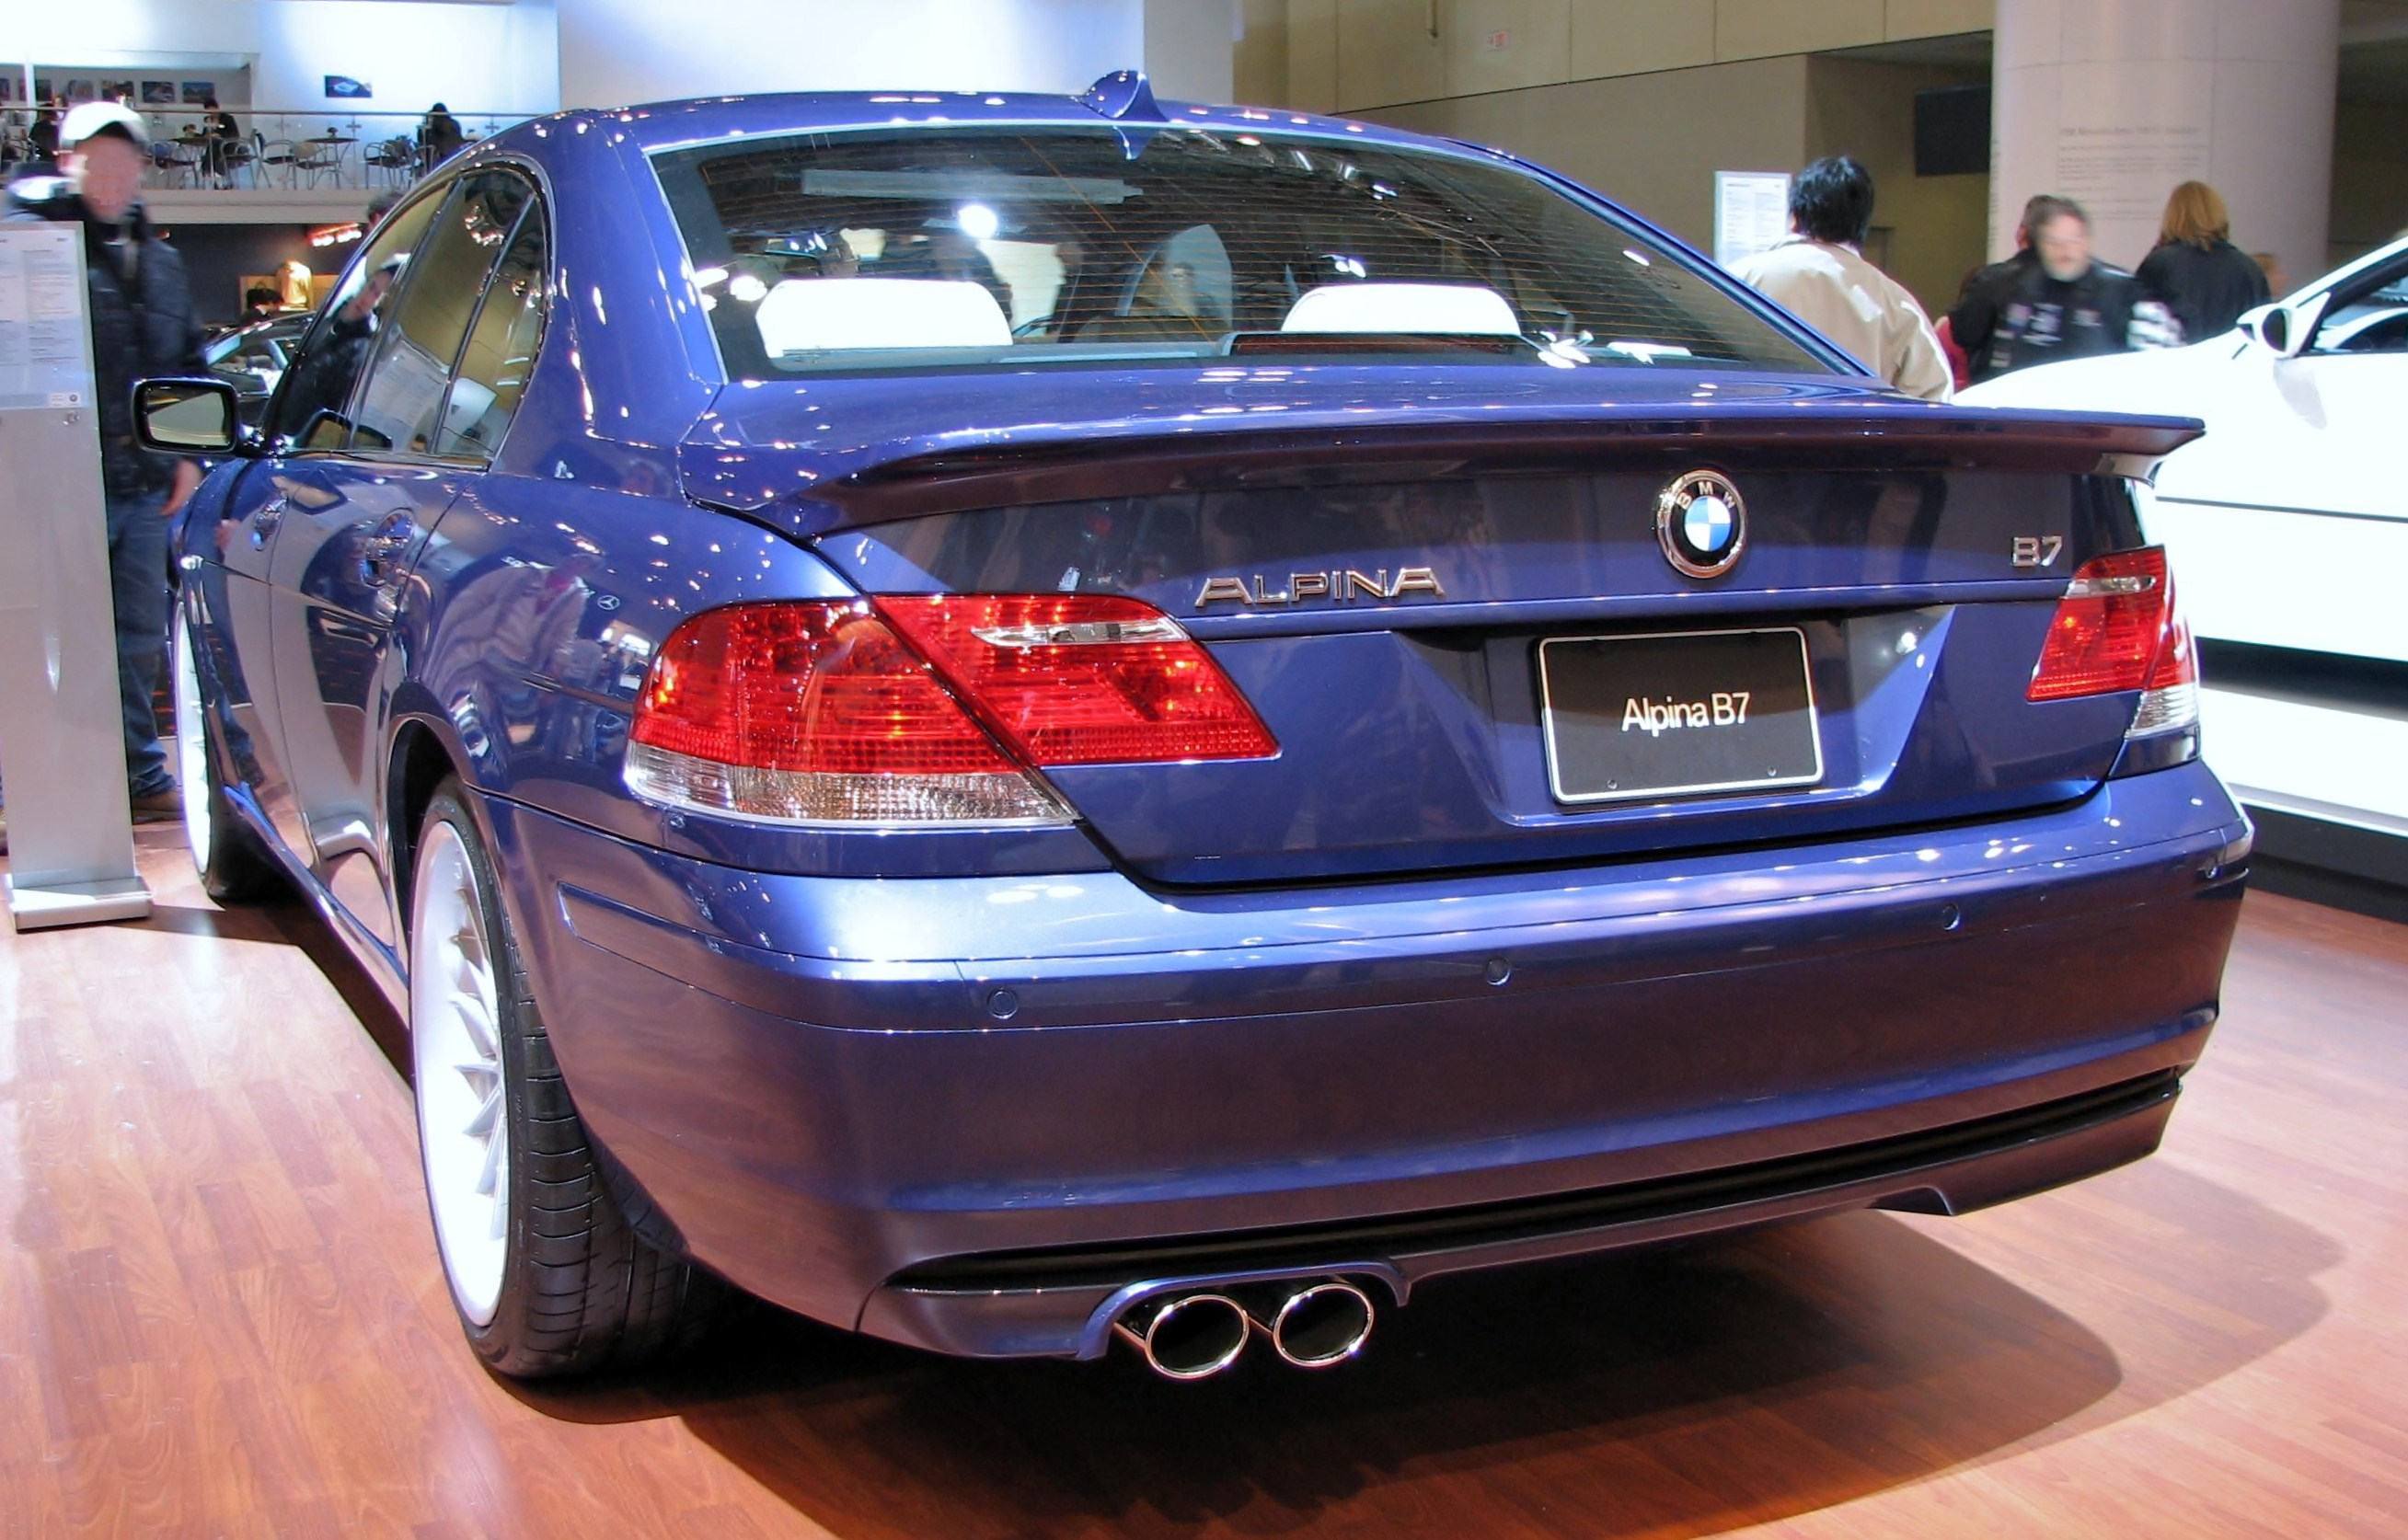 File BMW Alpina B E Sedanjpg Wikimedia Commons - Bmw m7 alpina